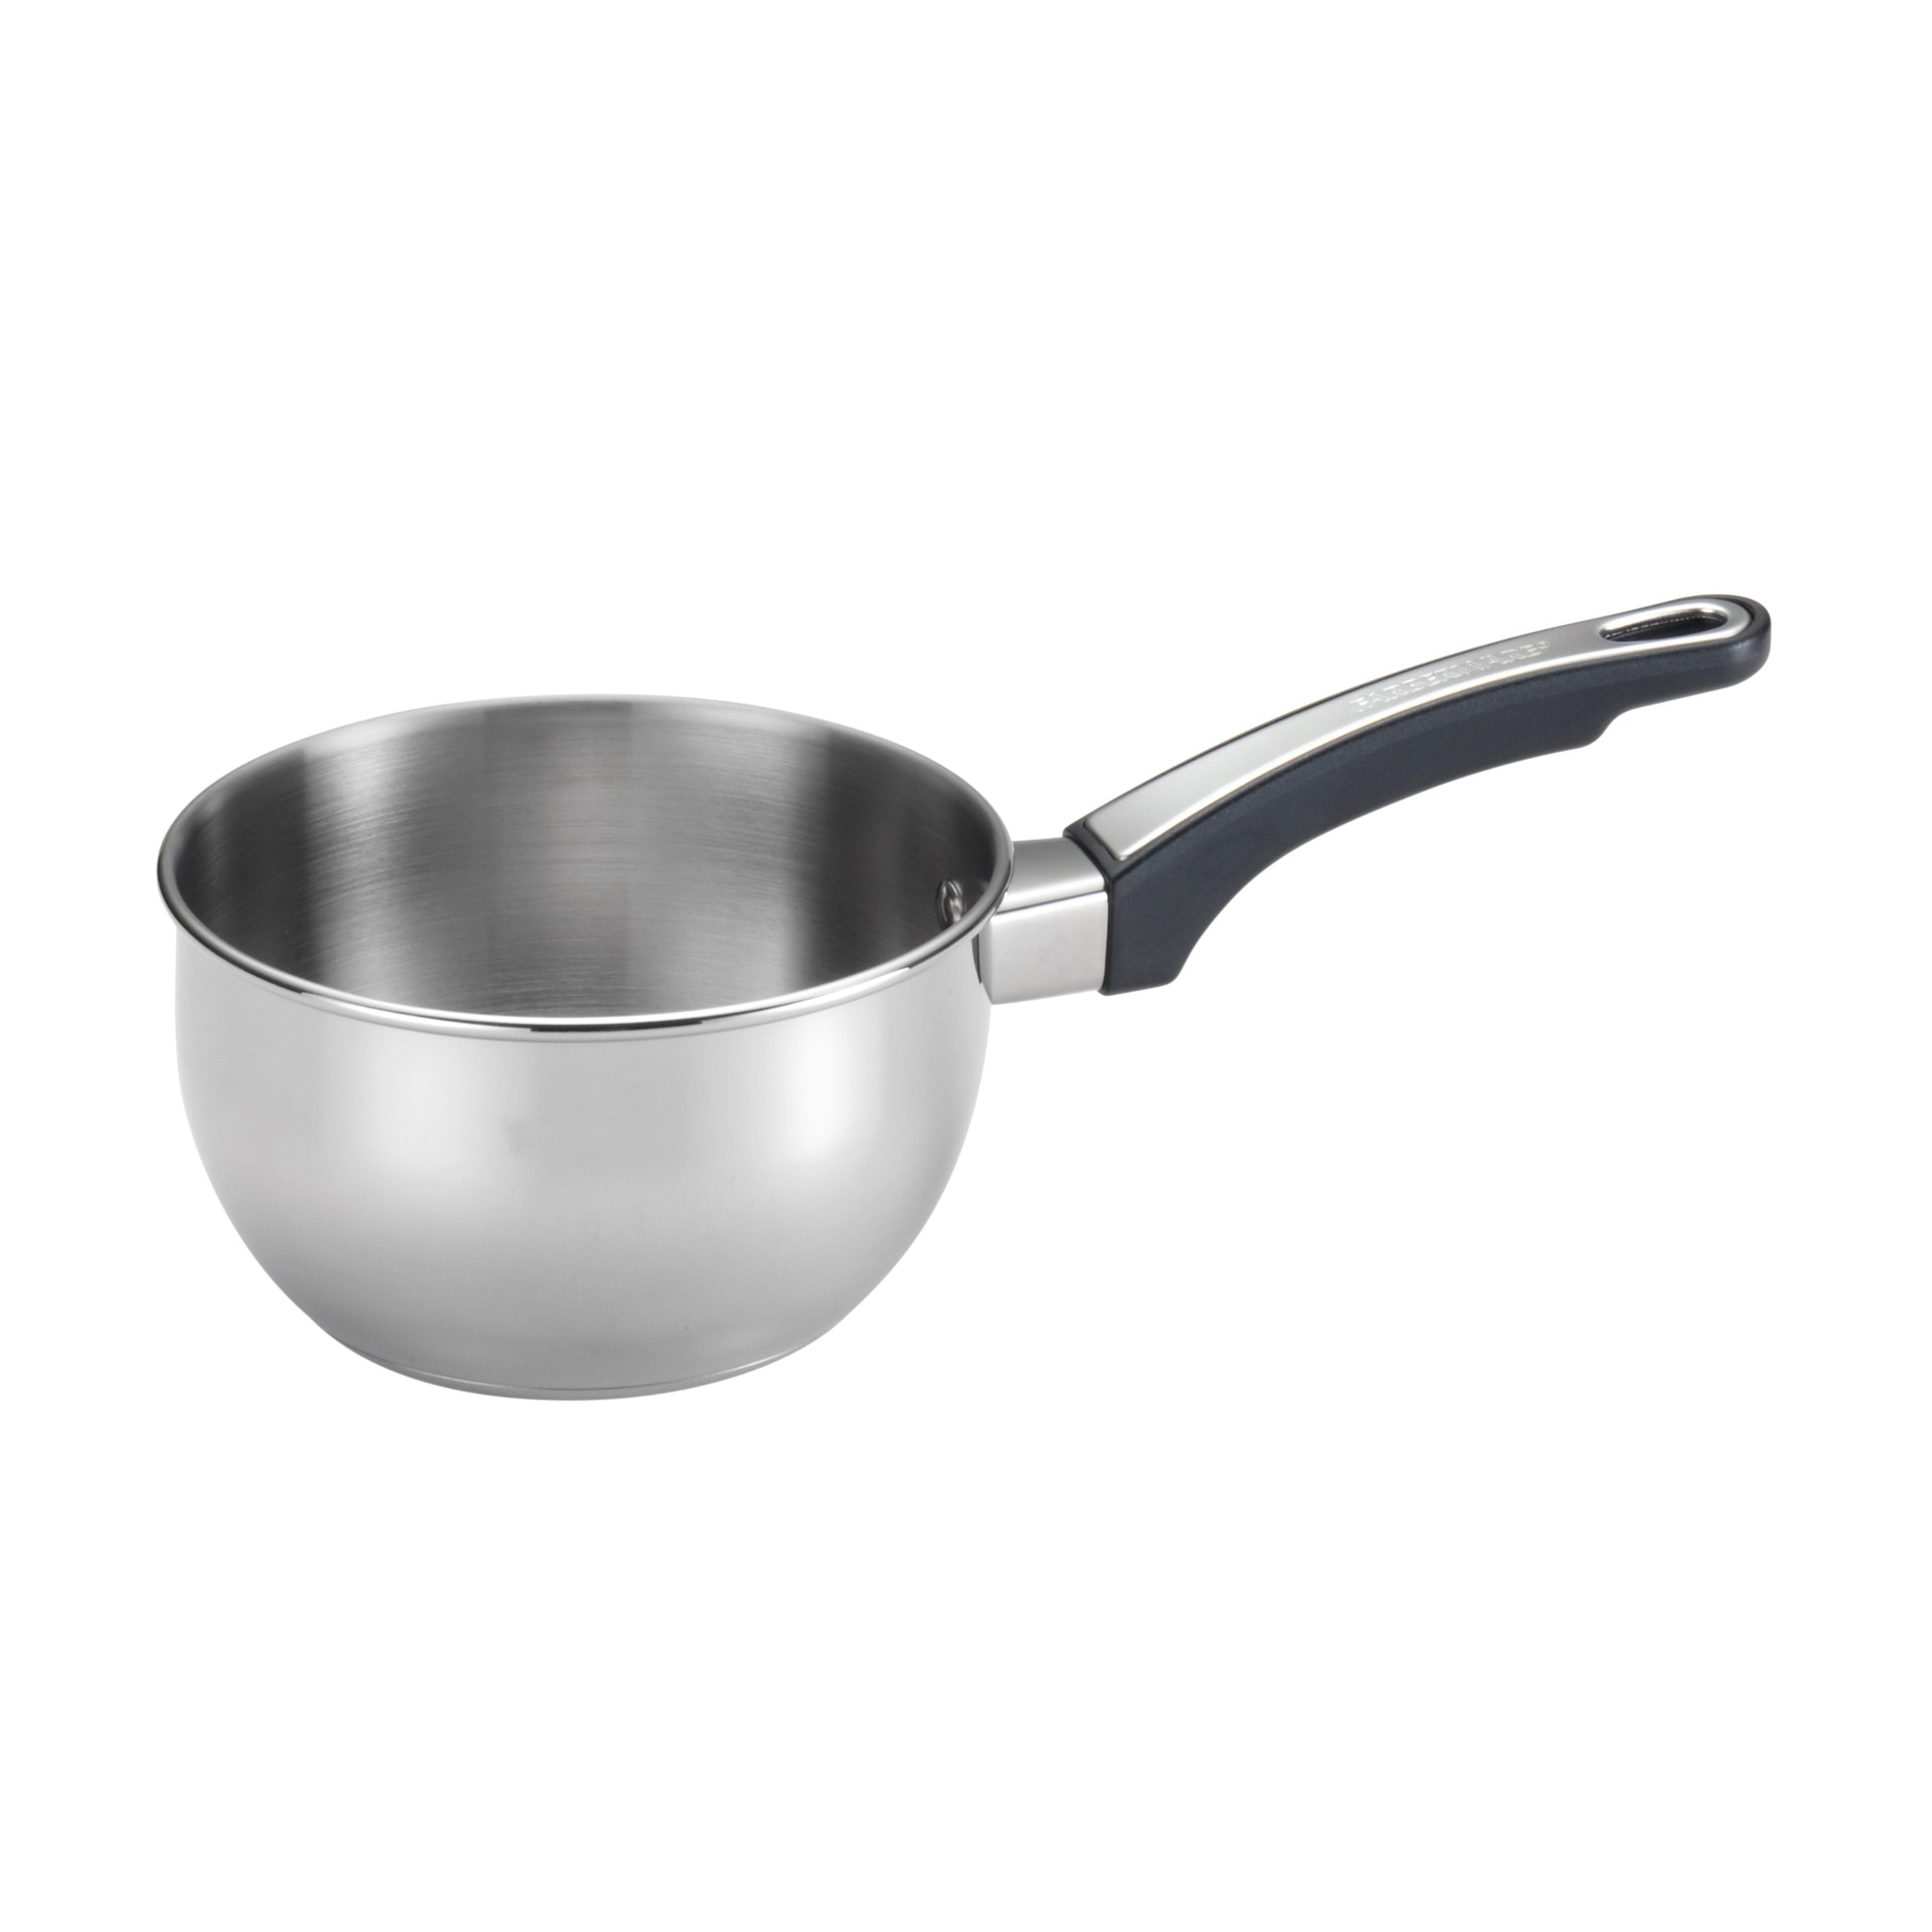 Farberware High Performance Stainless Steel 1-1/2-Quart Saucier